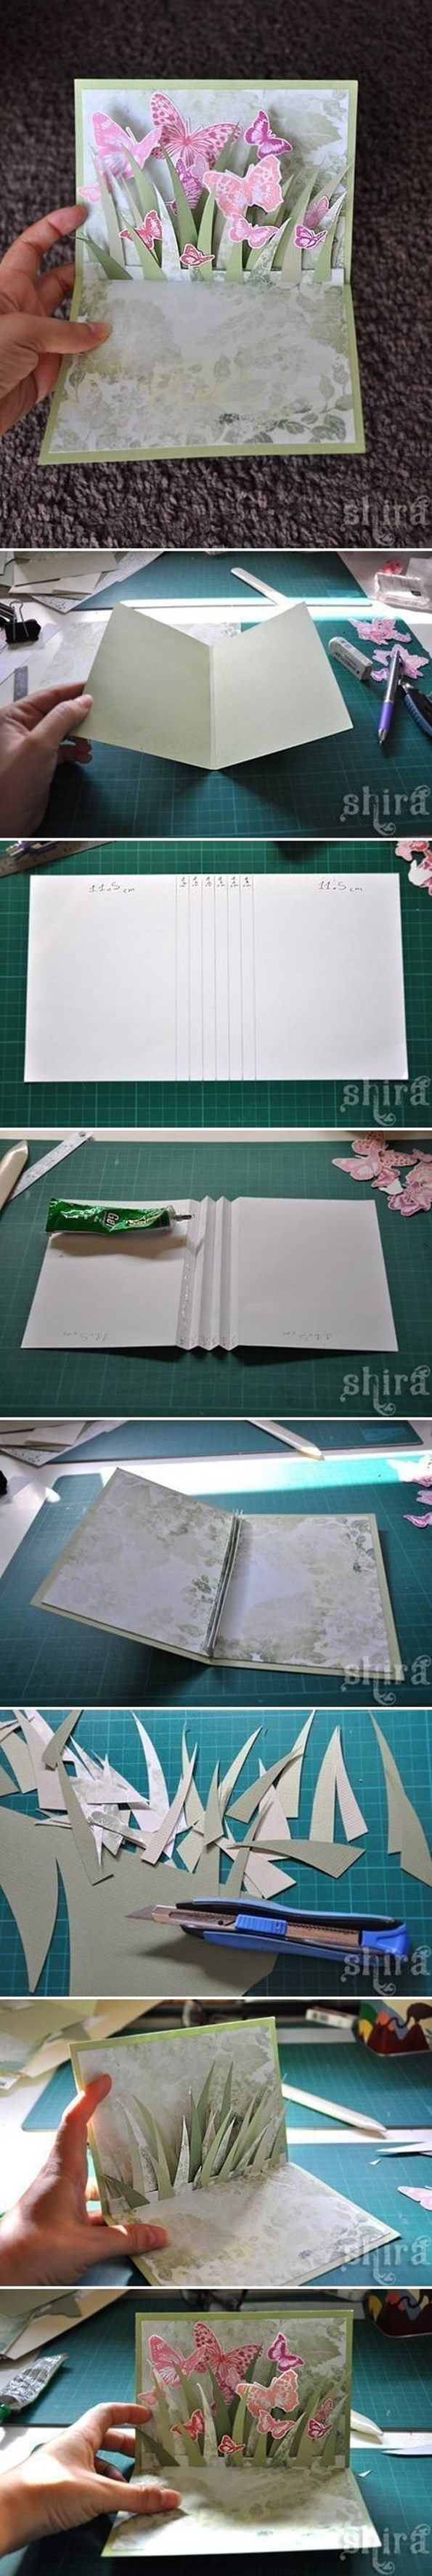 How to hand made 3d greeting card step by step 3d butterfly how to hand made 3d greeting card step by step kristyandbryce Gallery